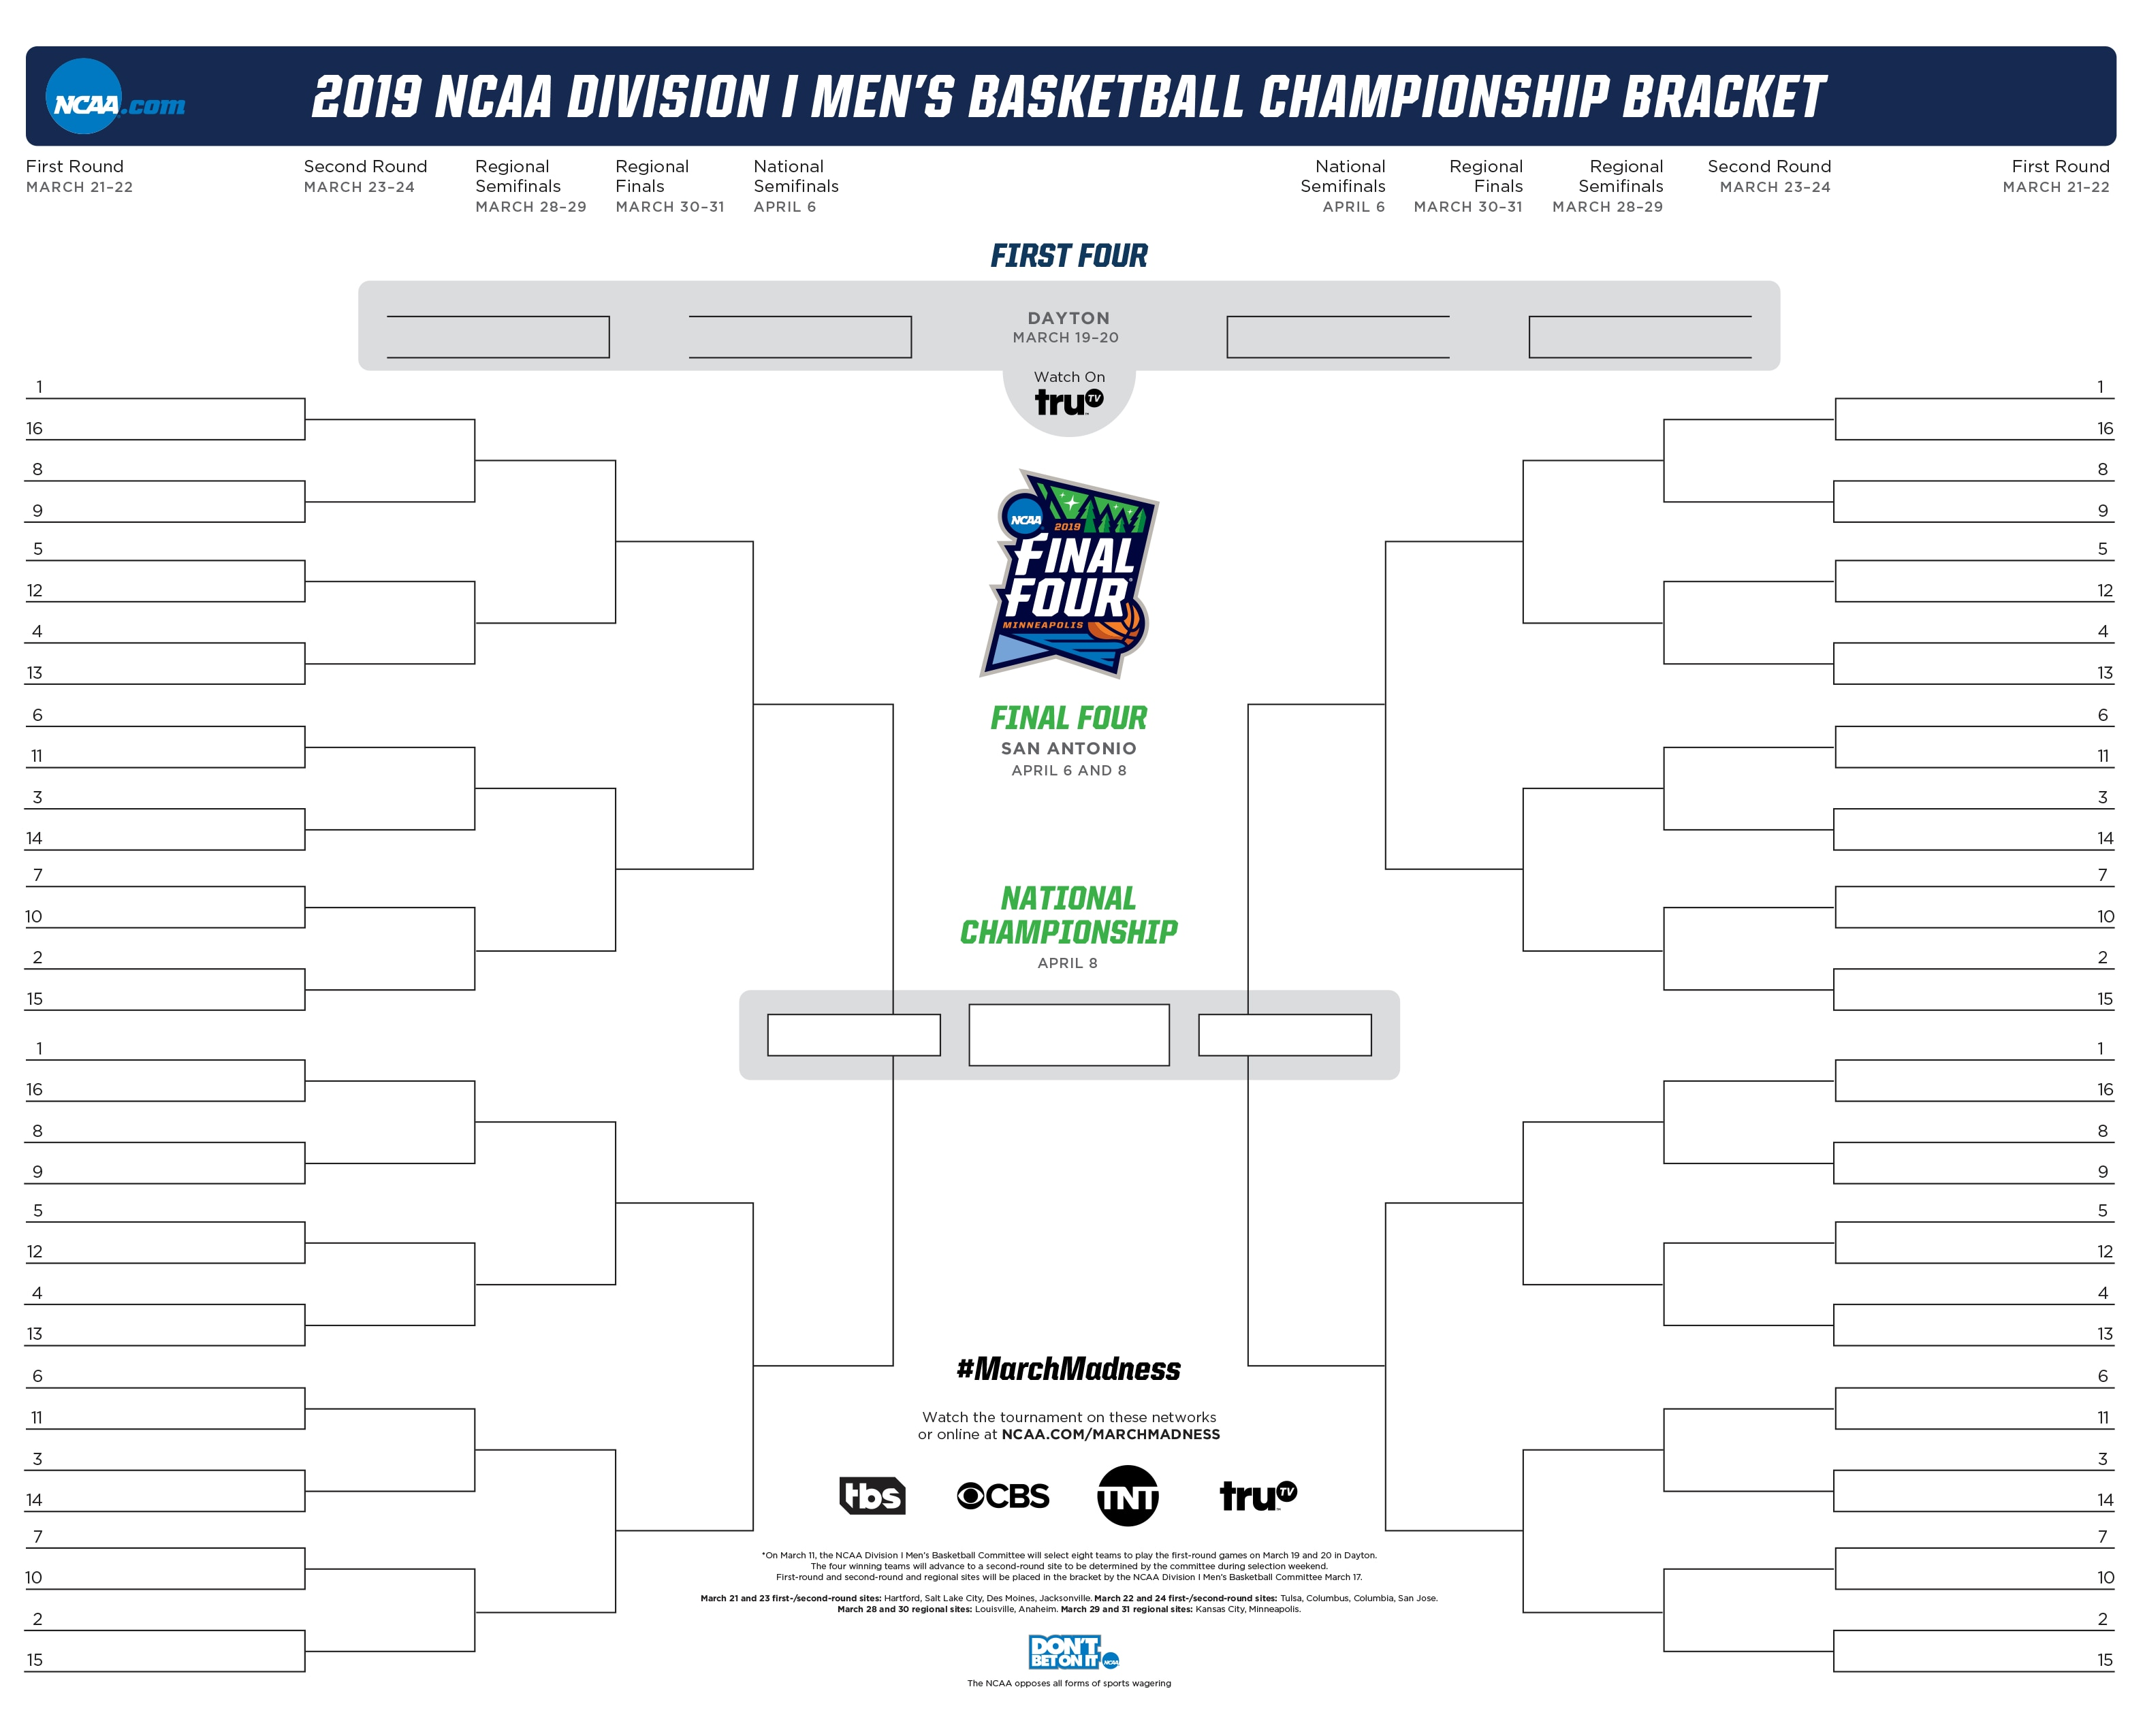 2019 NCAA tournament bracket